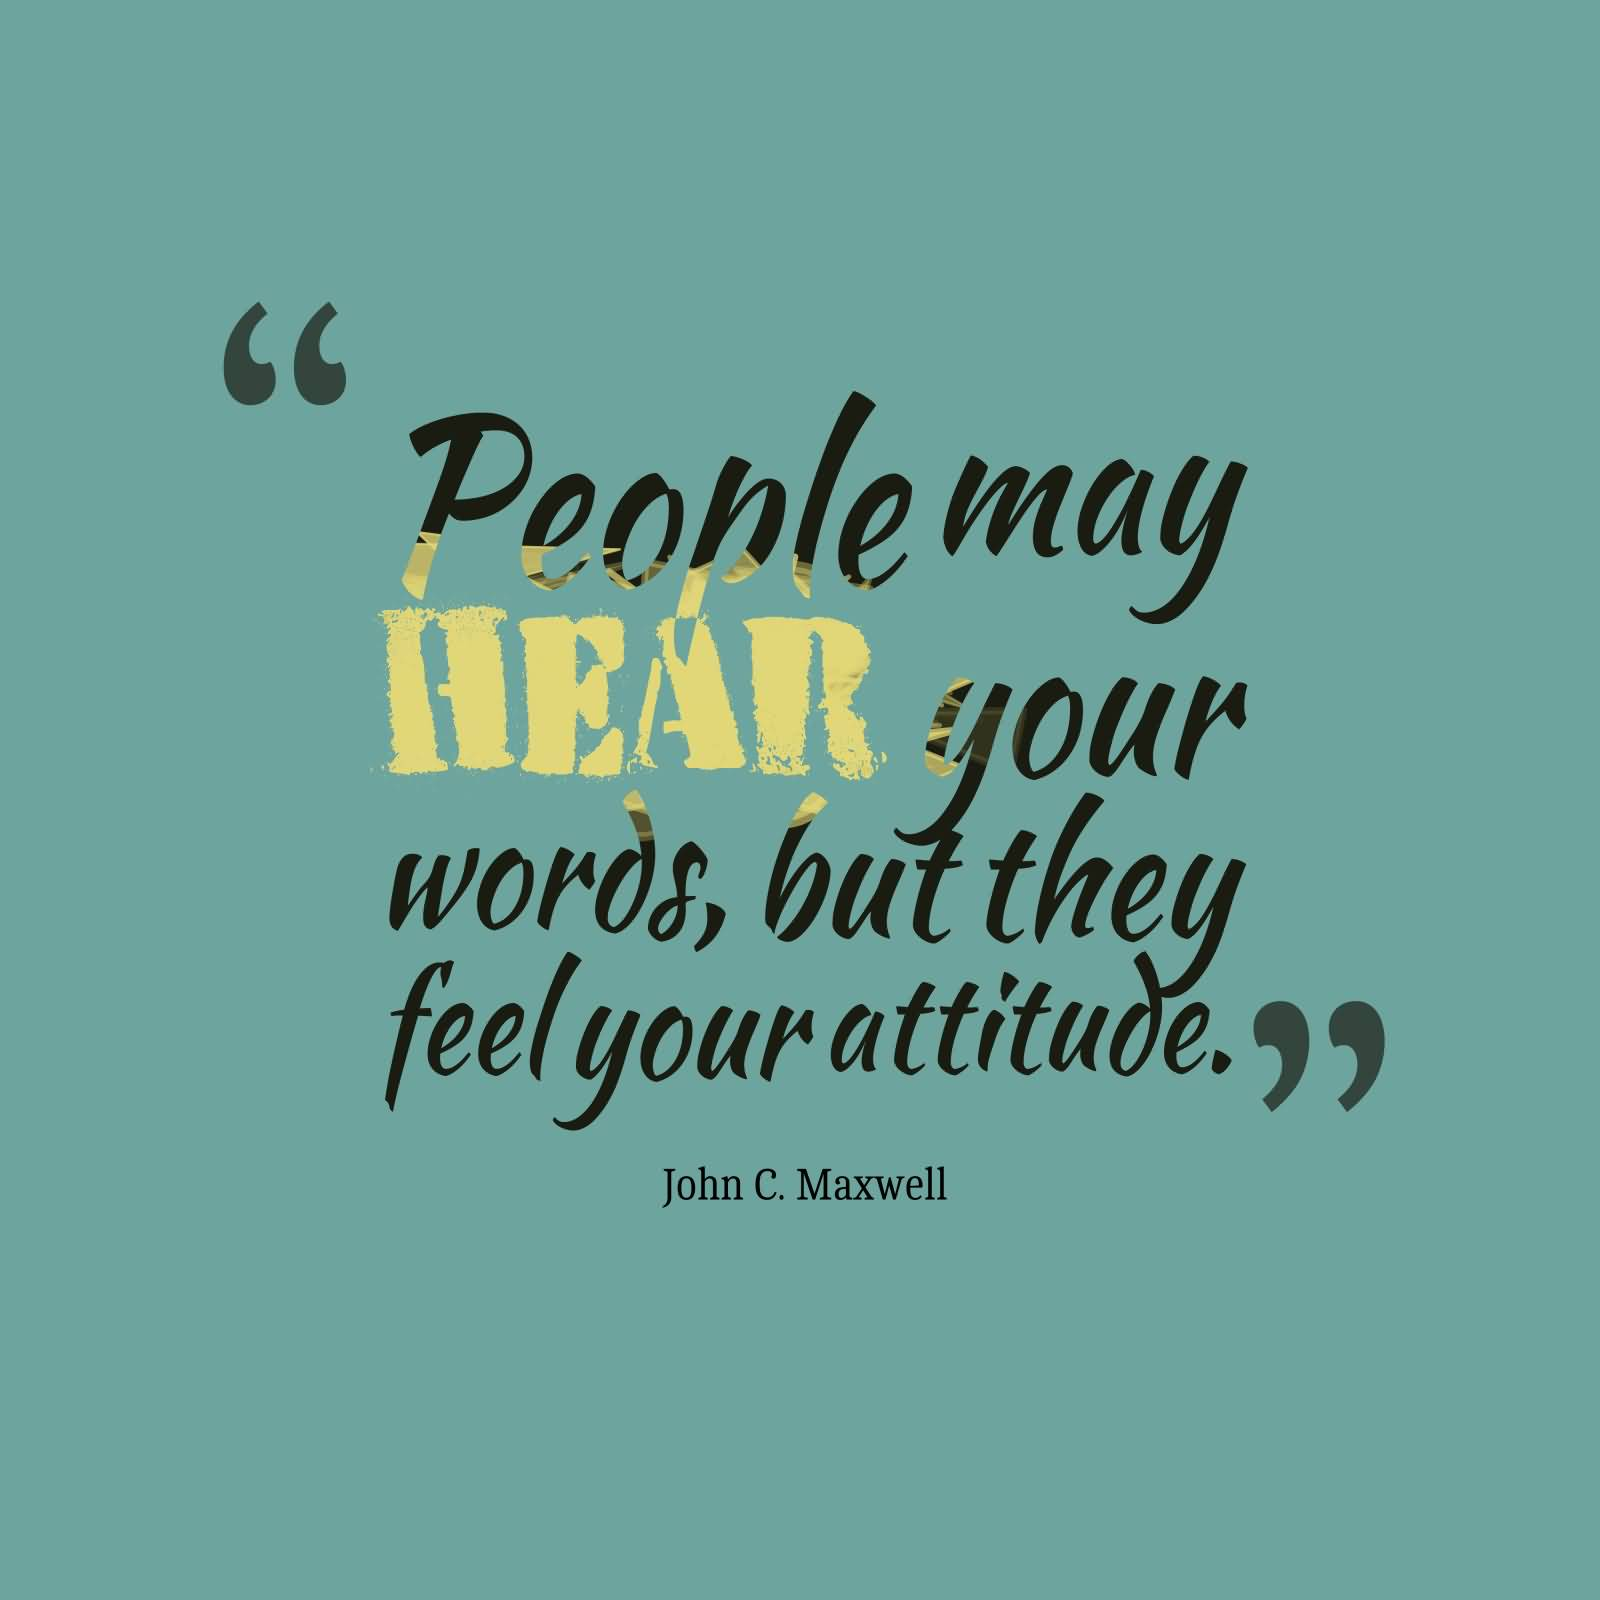 People may hear your words, but they feel your attitude. John C. Maxwell